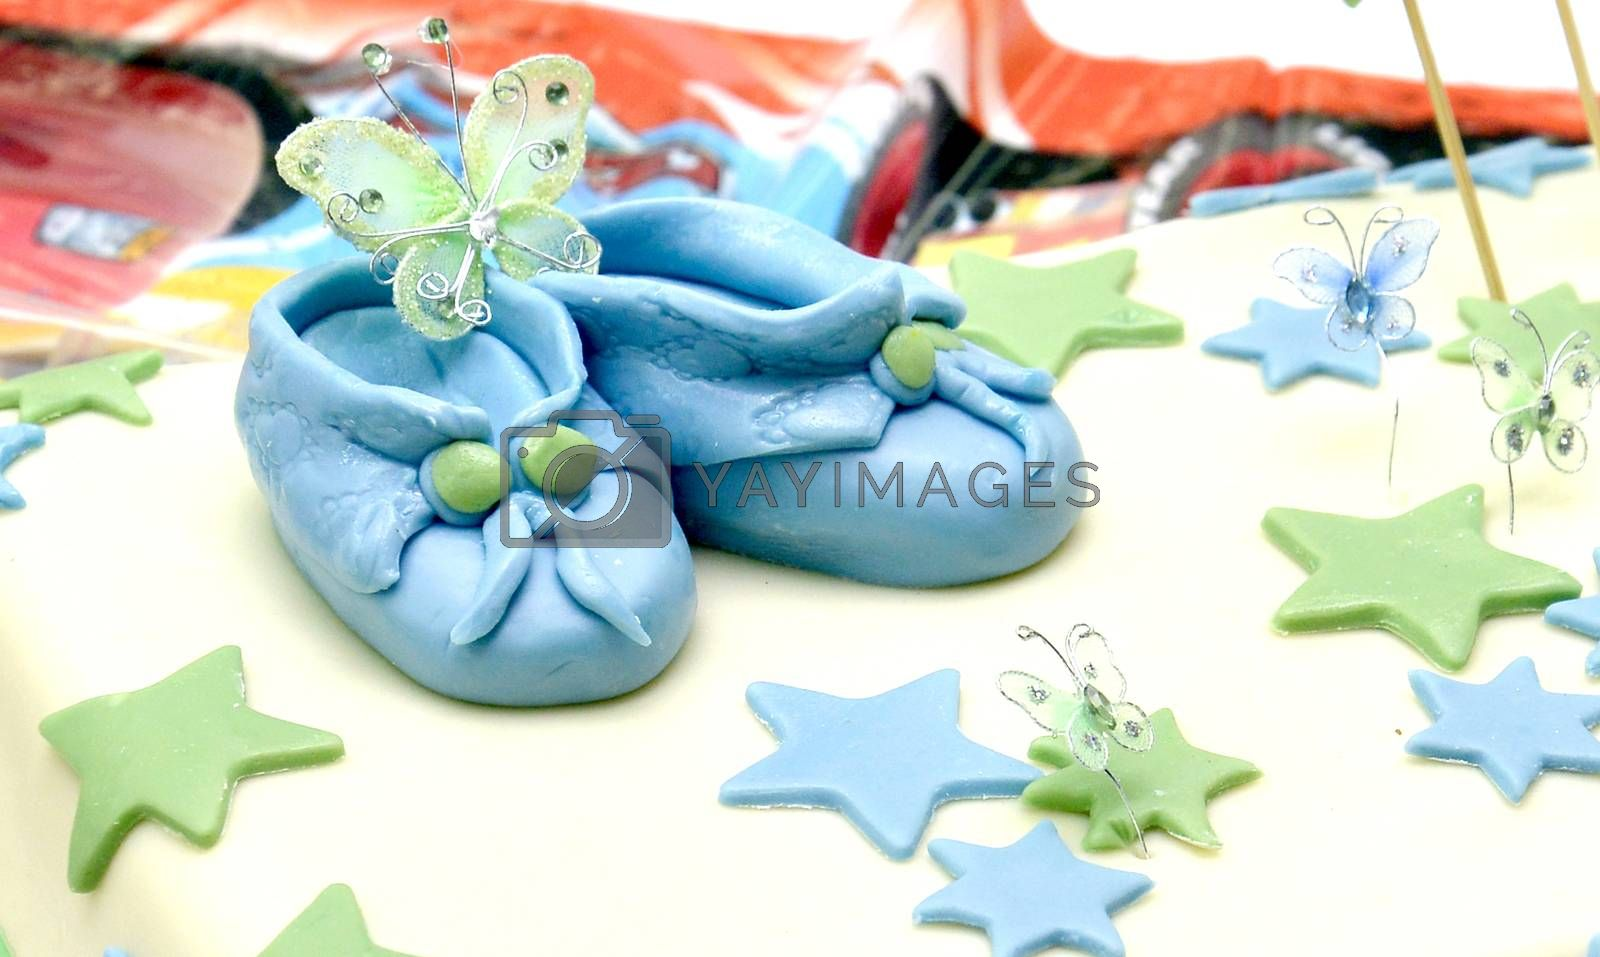 Celebrating baby boy first birthday, cute sweet shoes on a cake